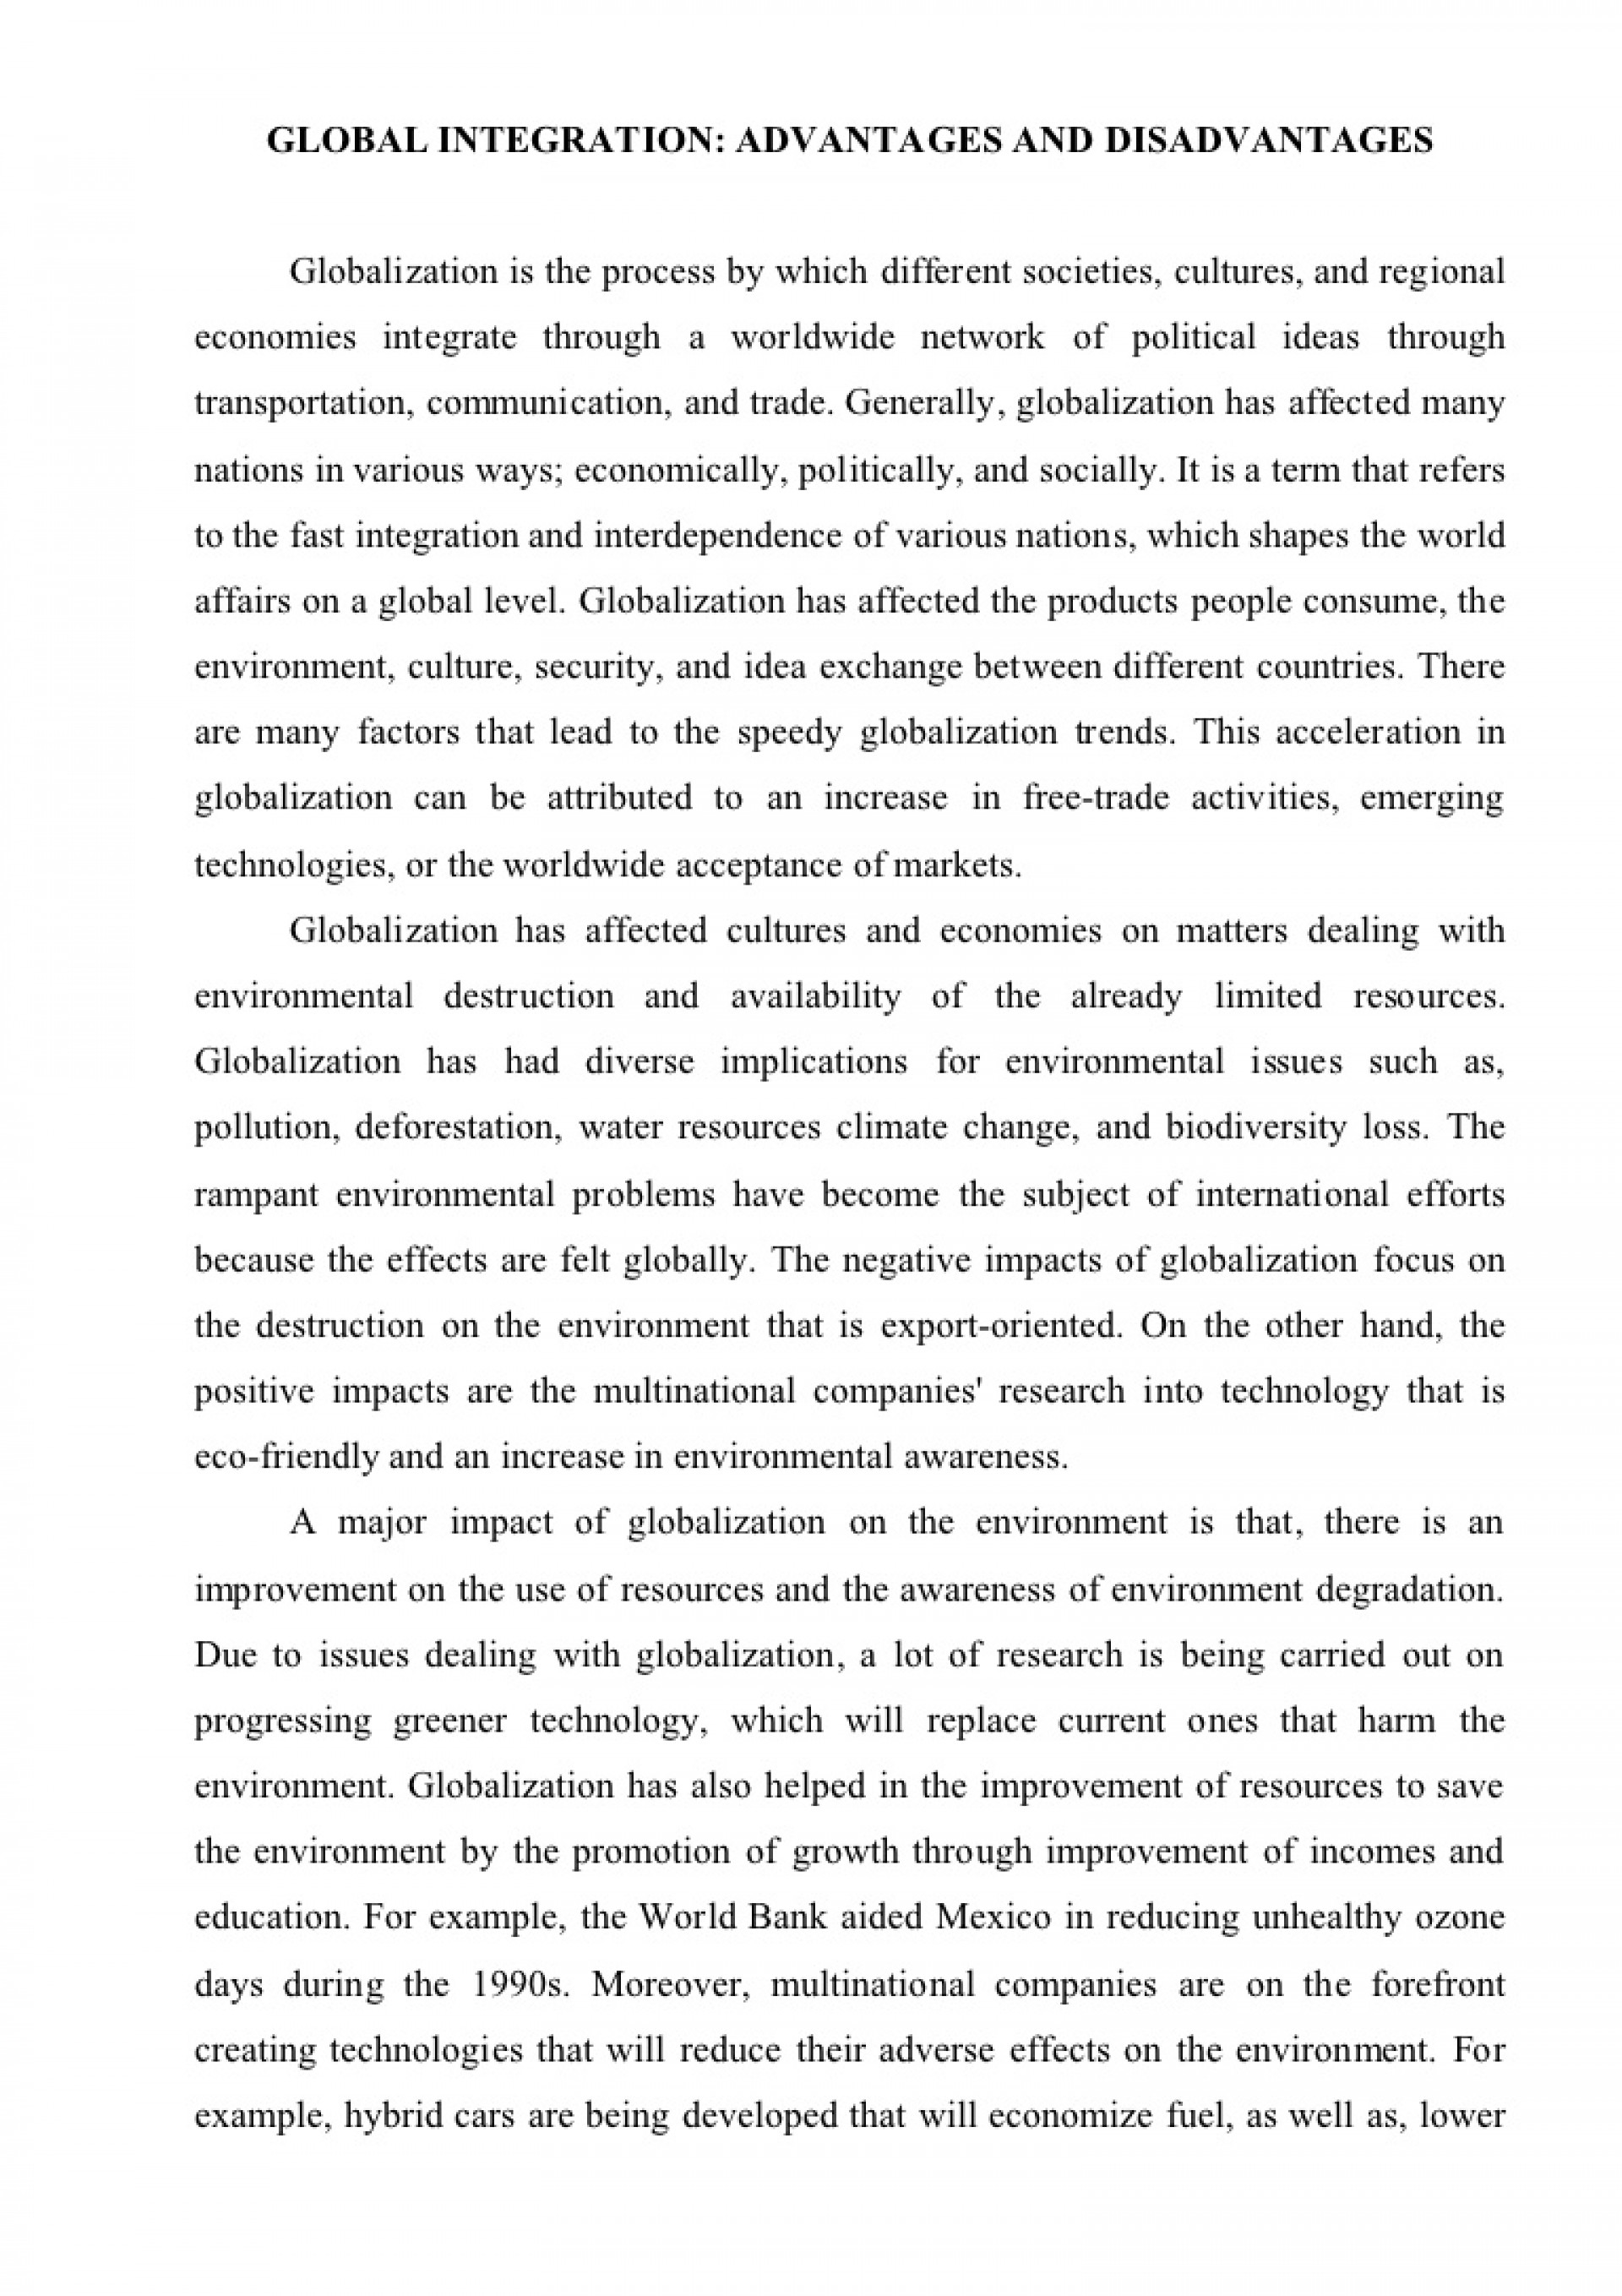 021 Essayglobalization Phpapp02 Thumbnail Essay Example Advantage And Disadvantage Of Shocking Science Advantages Disadvantages In Marathi Language Urdu Tamil Pdf 1920